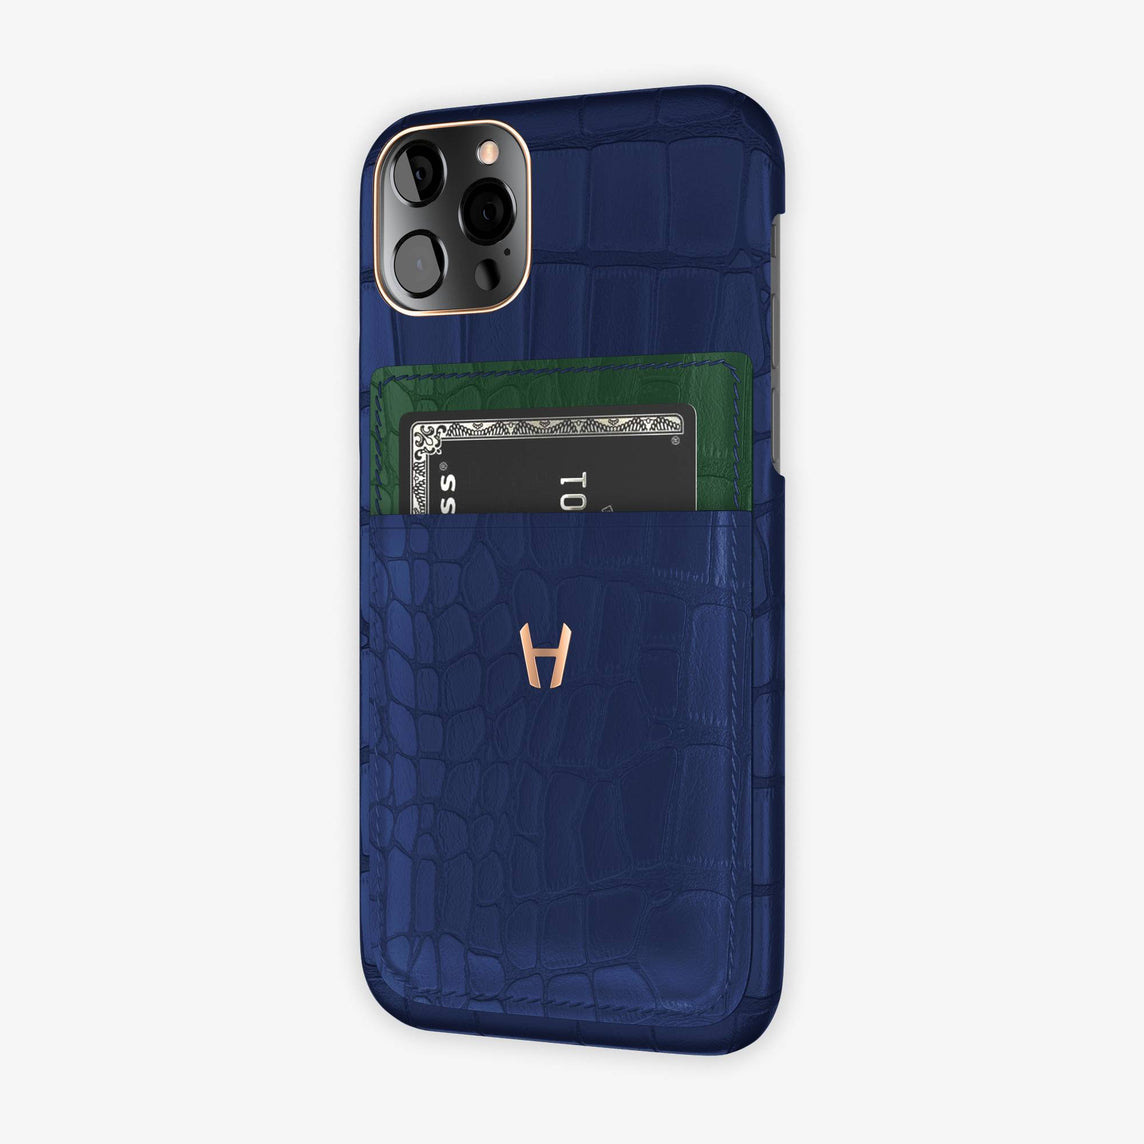 iPhone 12 & 12 Pro | Navy Blue/Green - Rose Gold